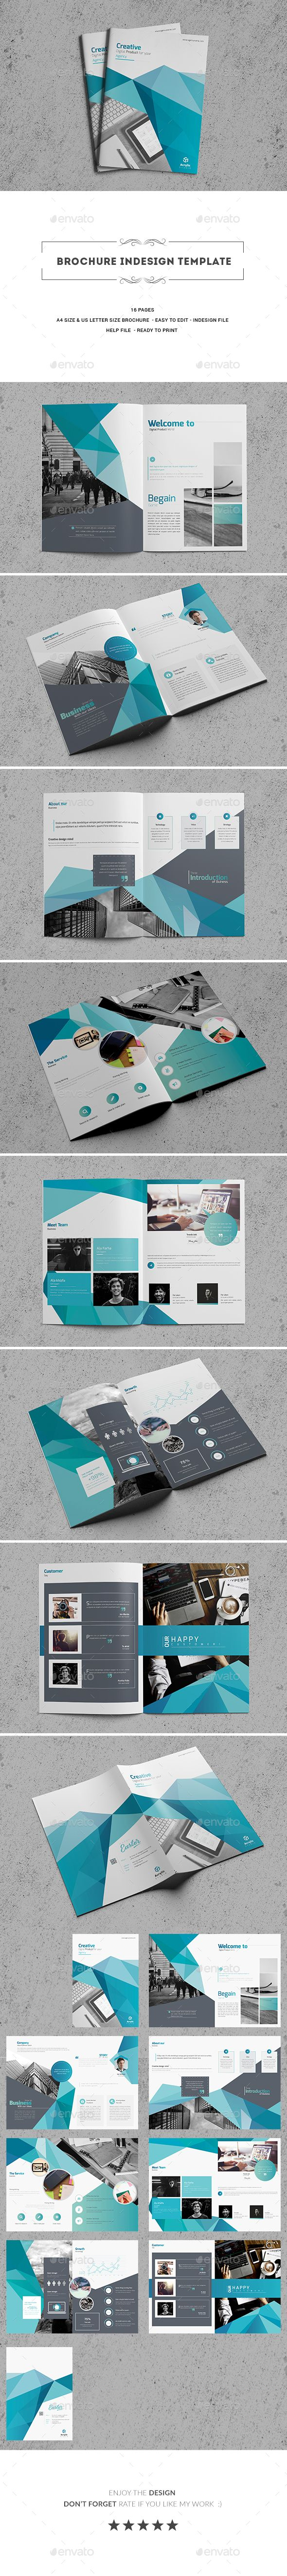 Brochure Indesign Template | Fútbol, Revistas y Libros